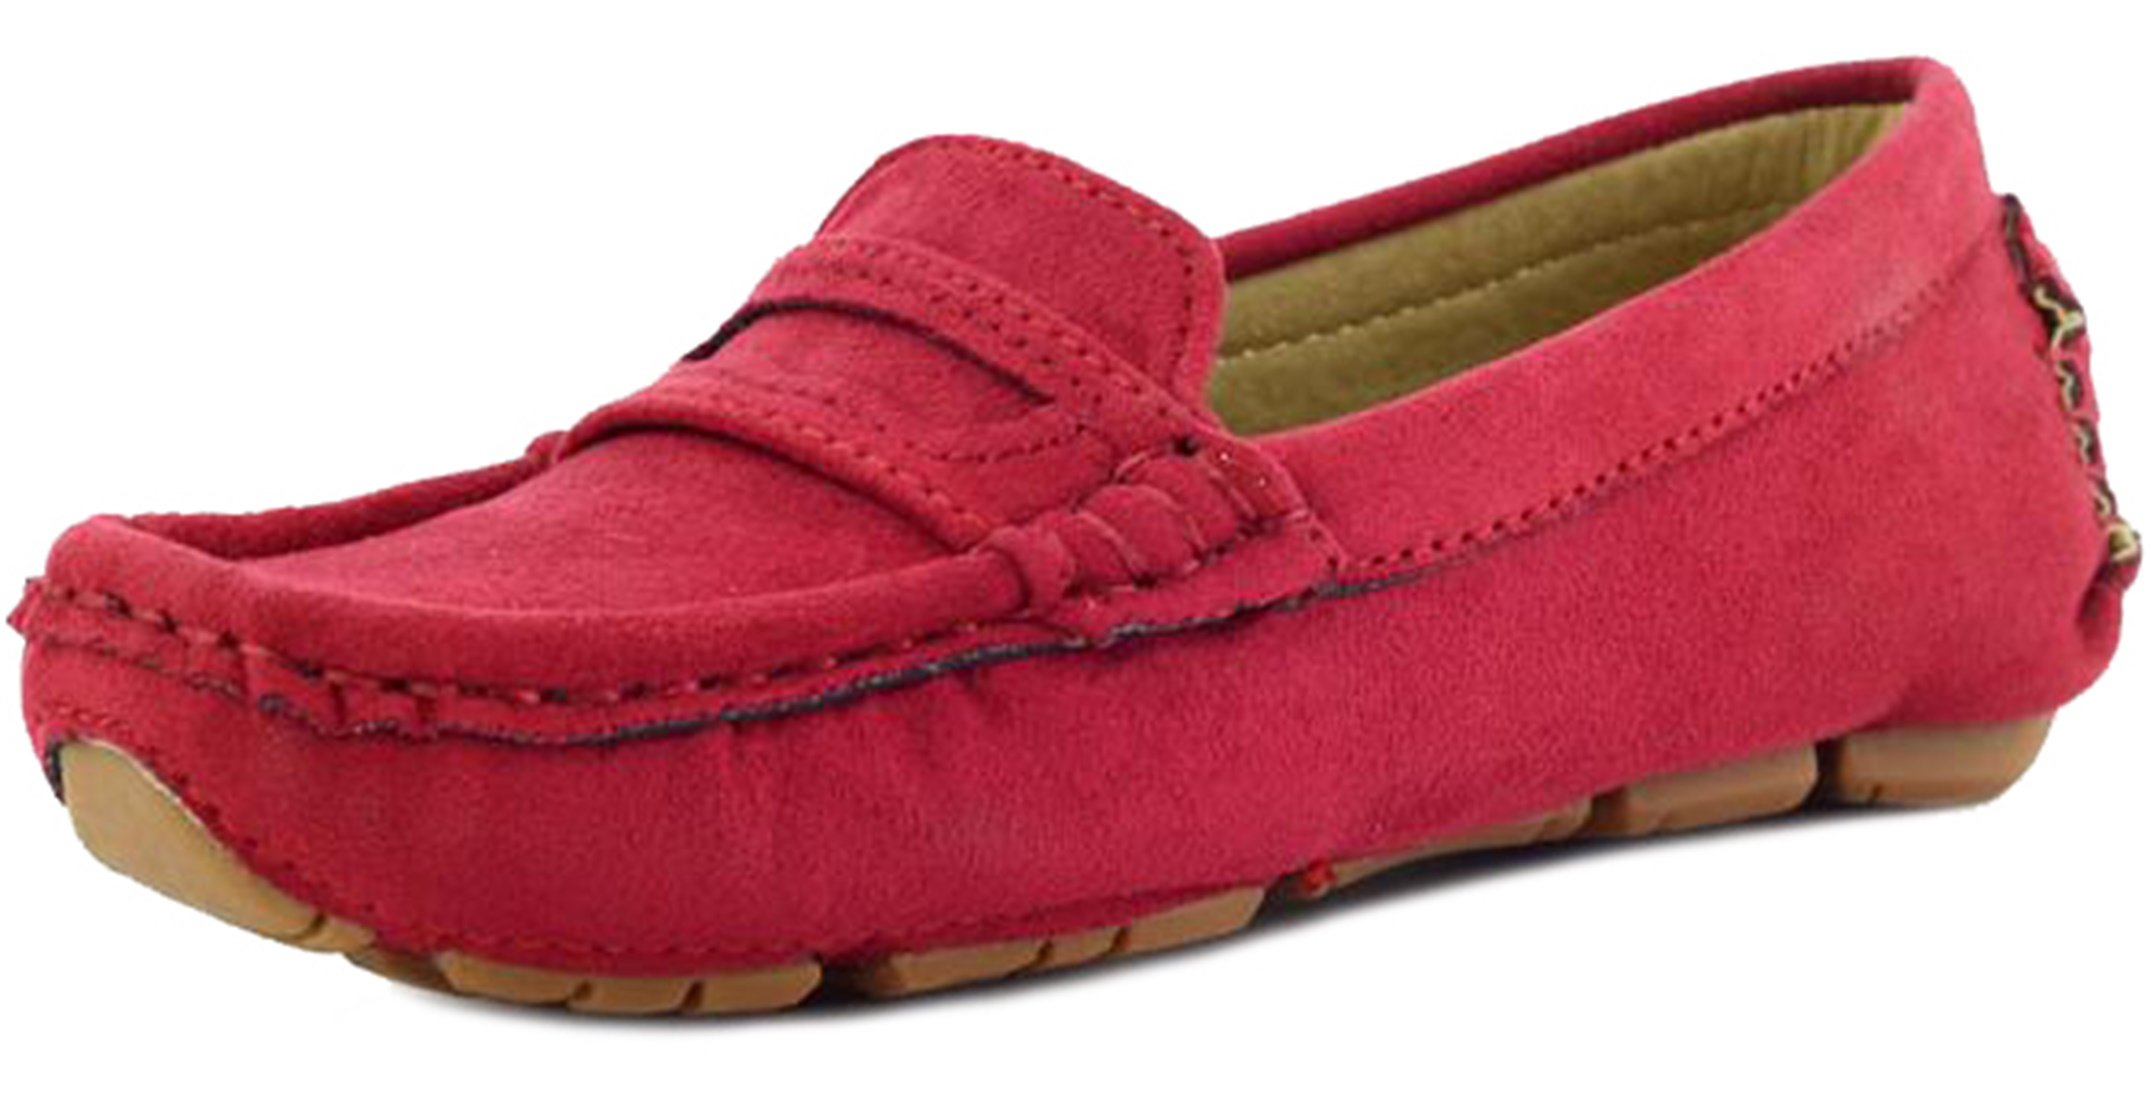 PPXID Girl's Boy's Suede Slip-on Loafers Shoes(Toddler/Little Kid/Big Kid)-Red 13 US Size